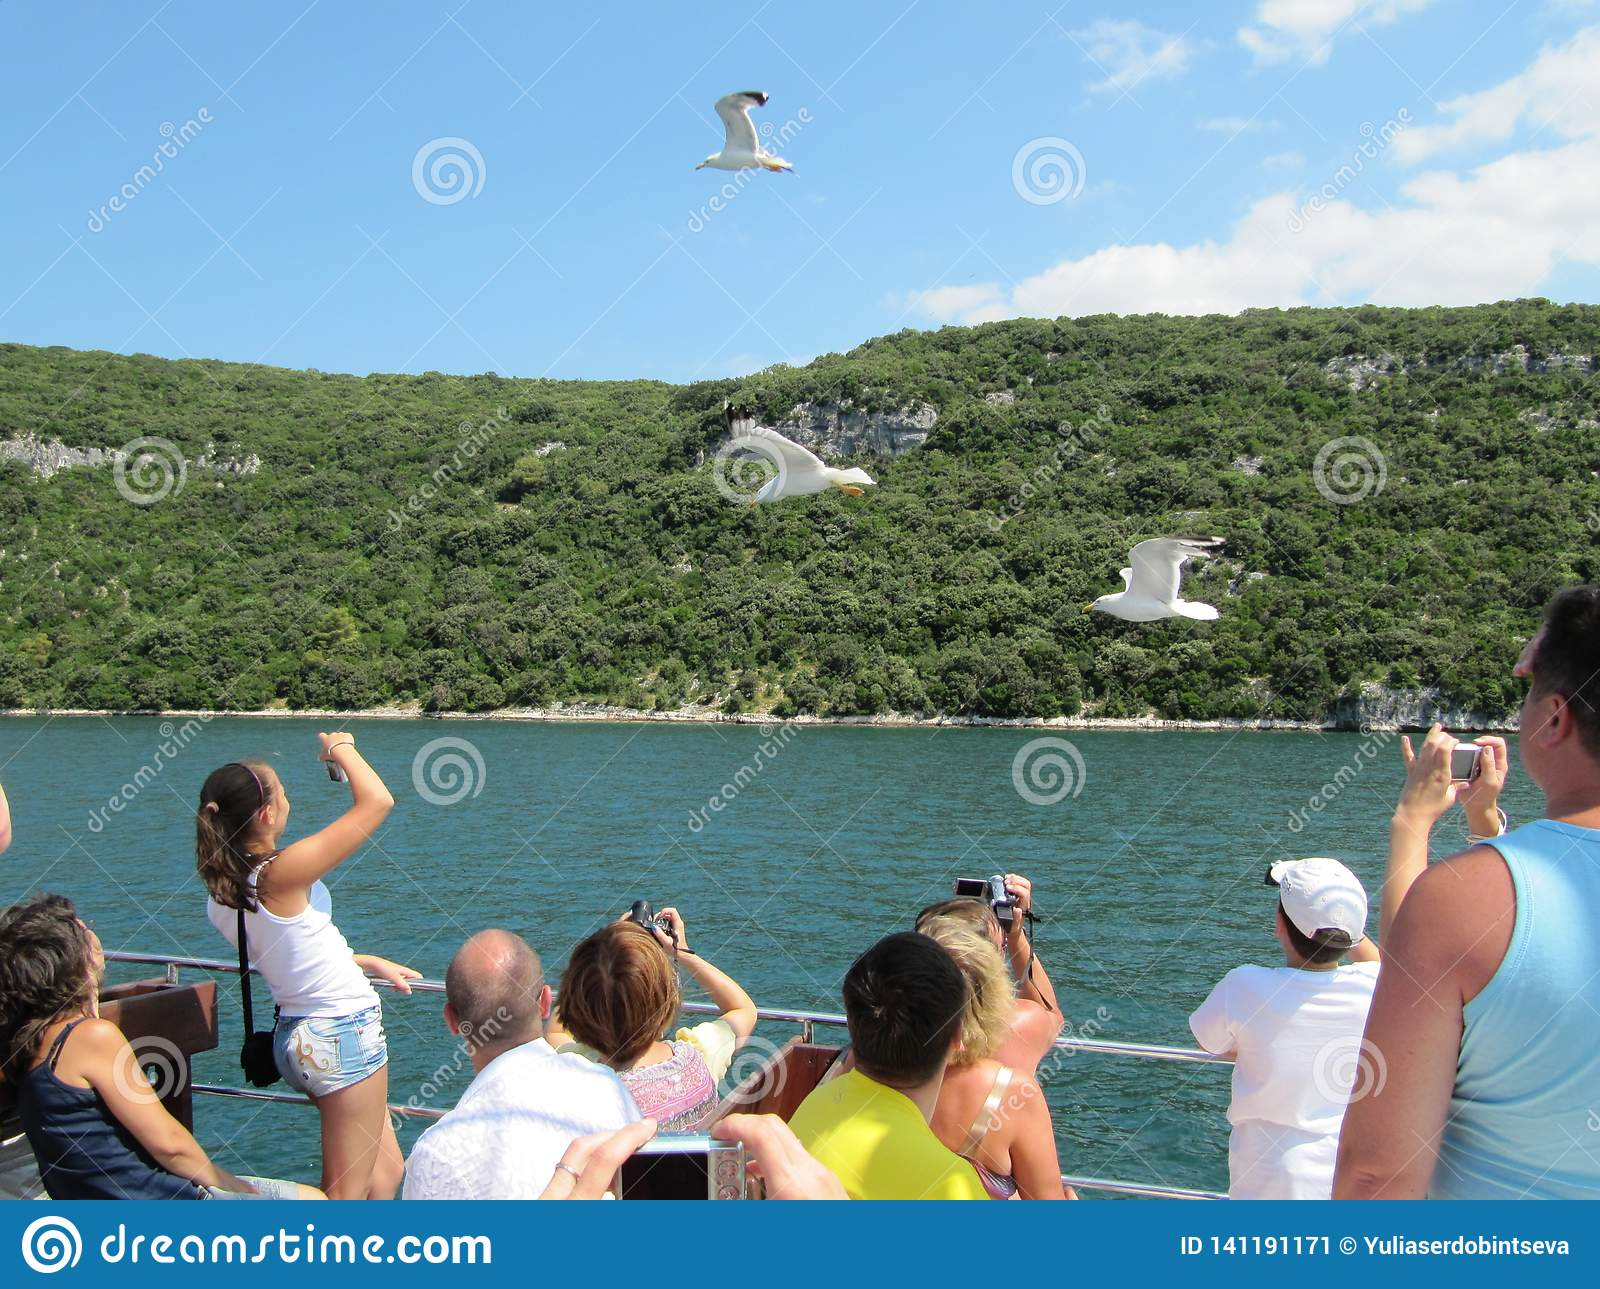 Tourists sailing on the ferry to feed seagulls and take pictures. Croatia, Istra - July 20, 2010.